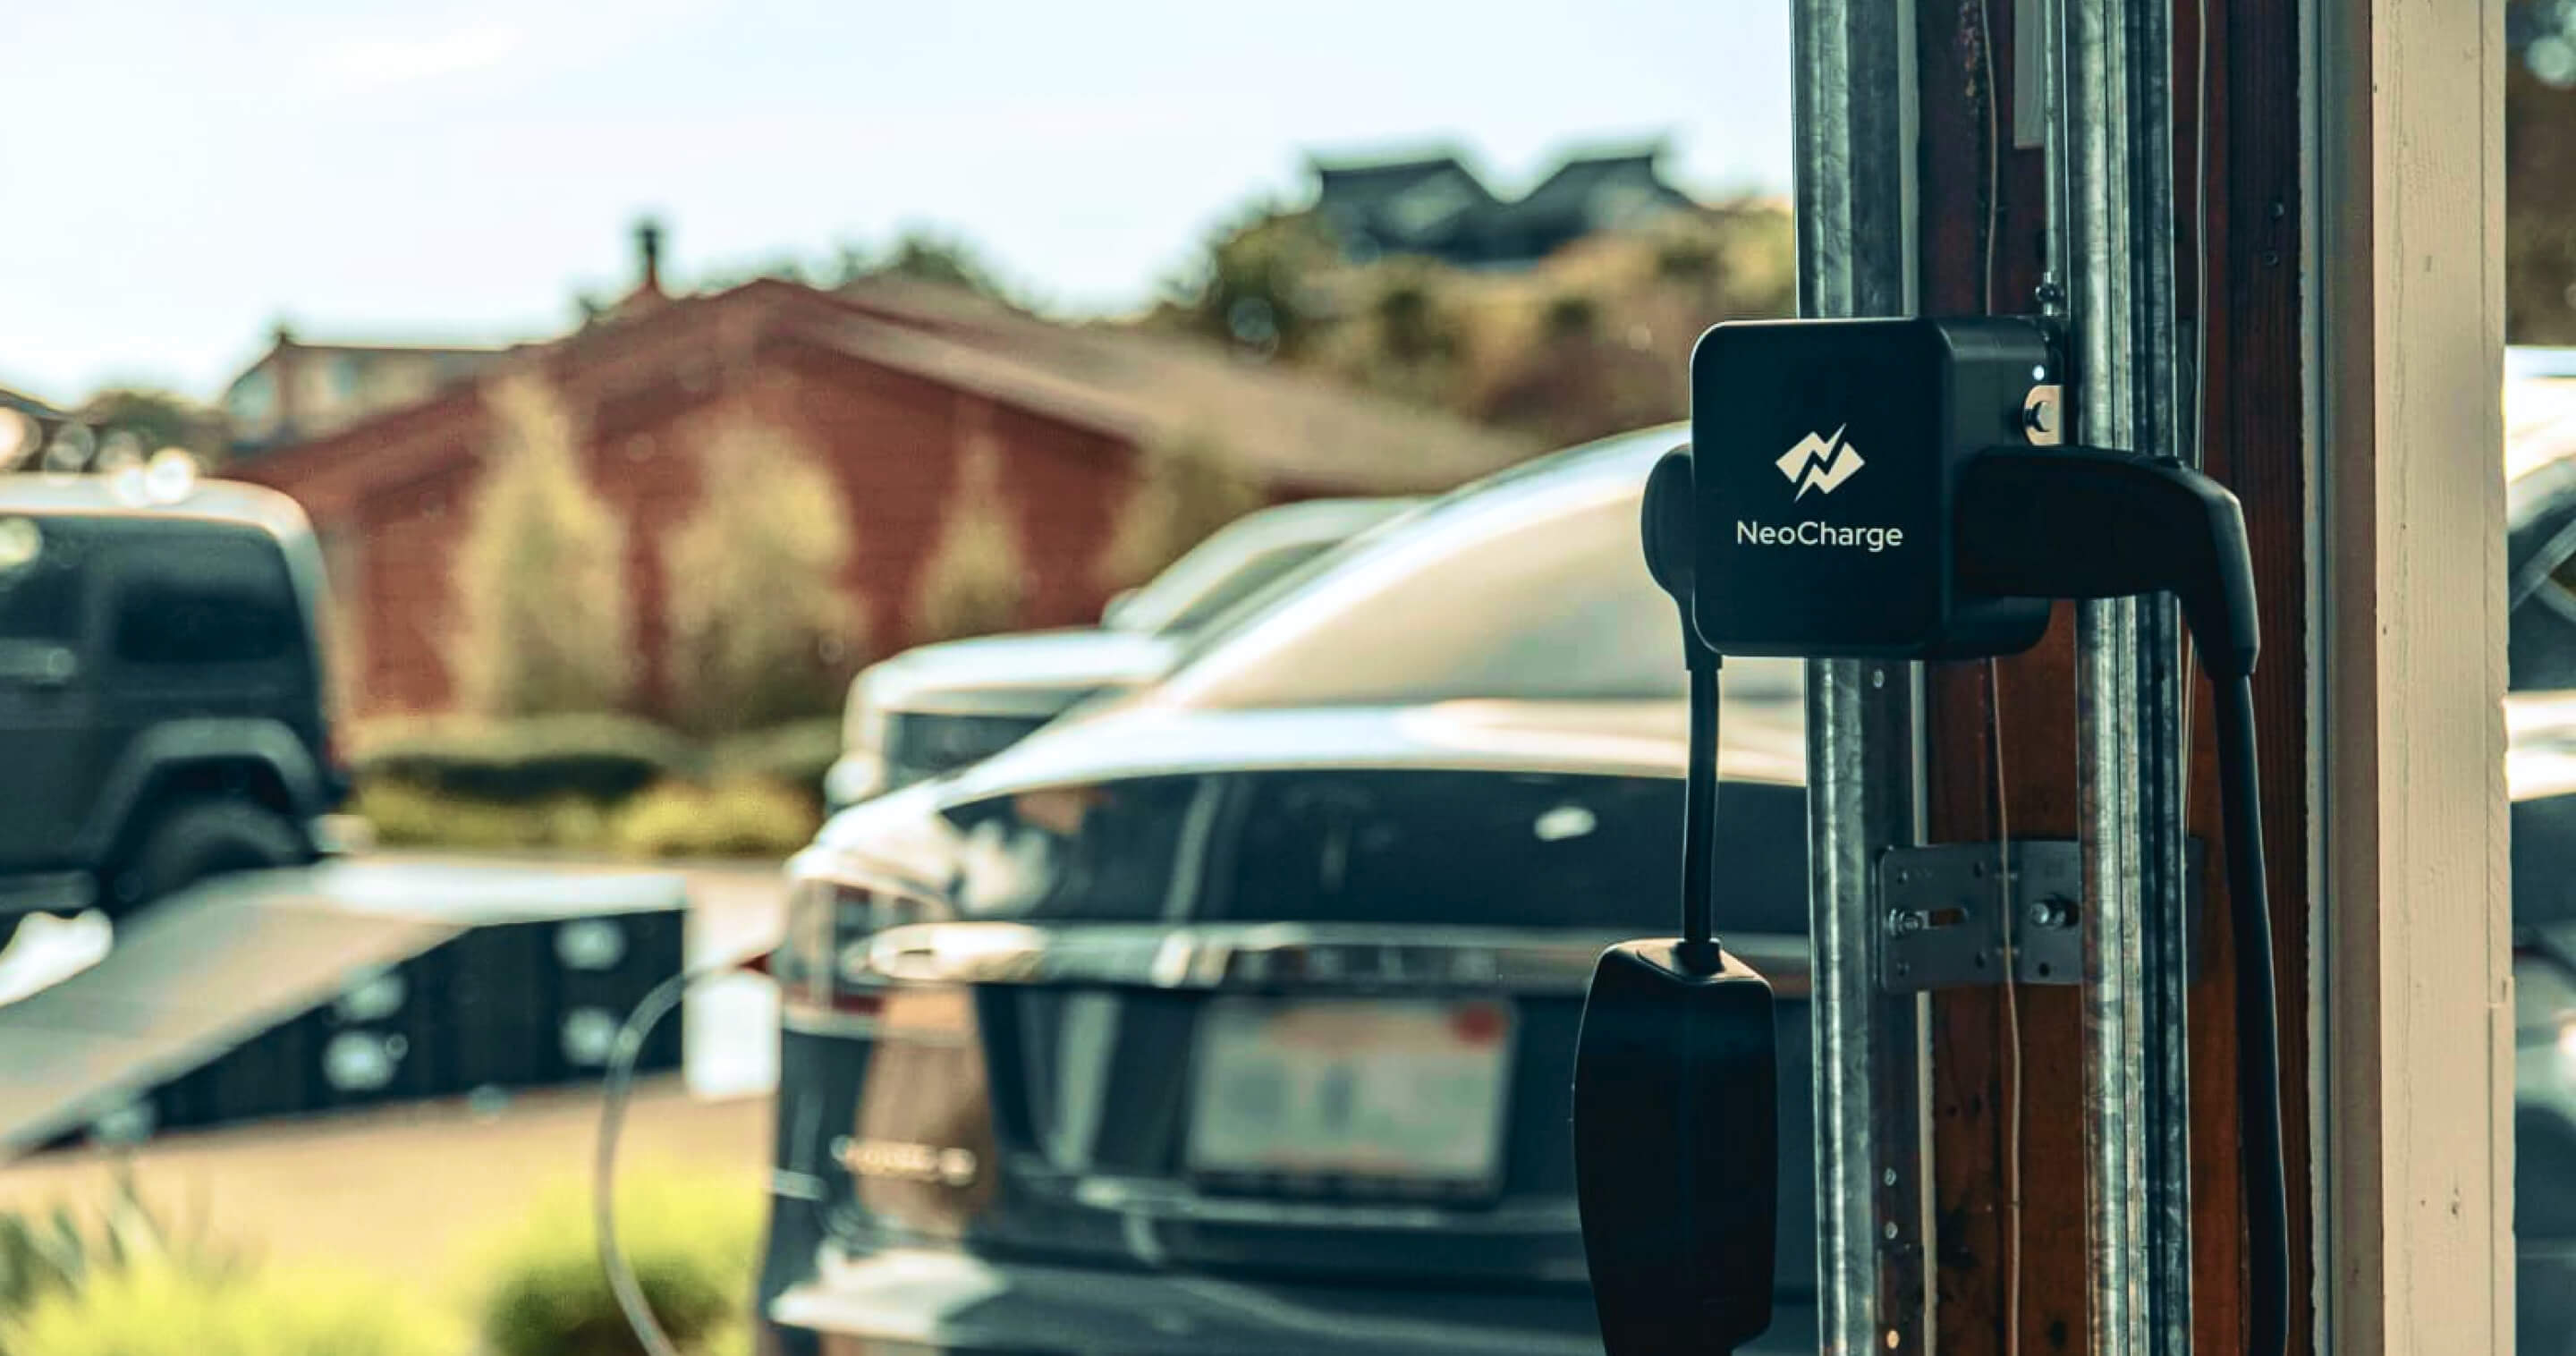 Charging an electric vehicle at home using NeoCharge Smart Splitter